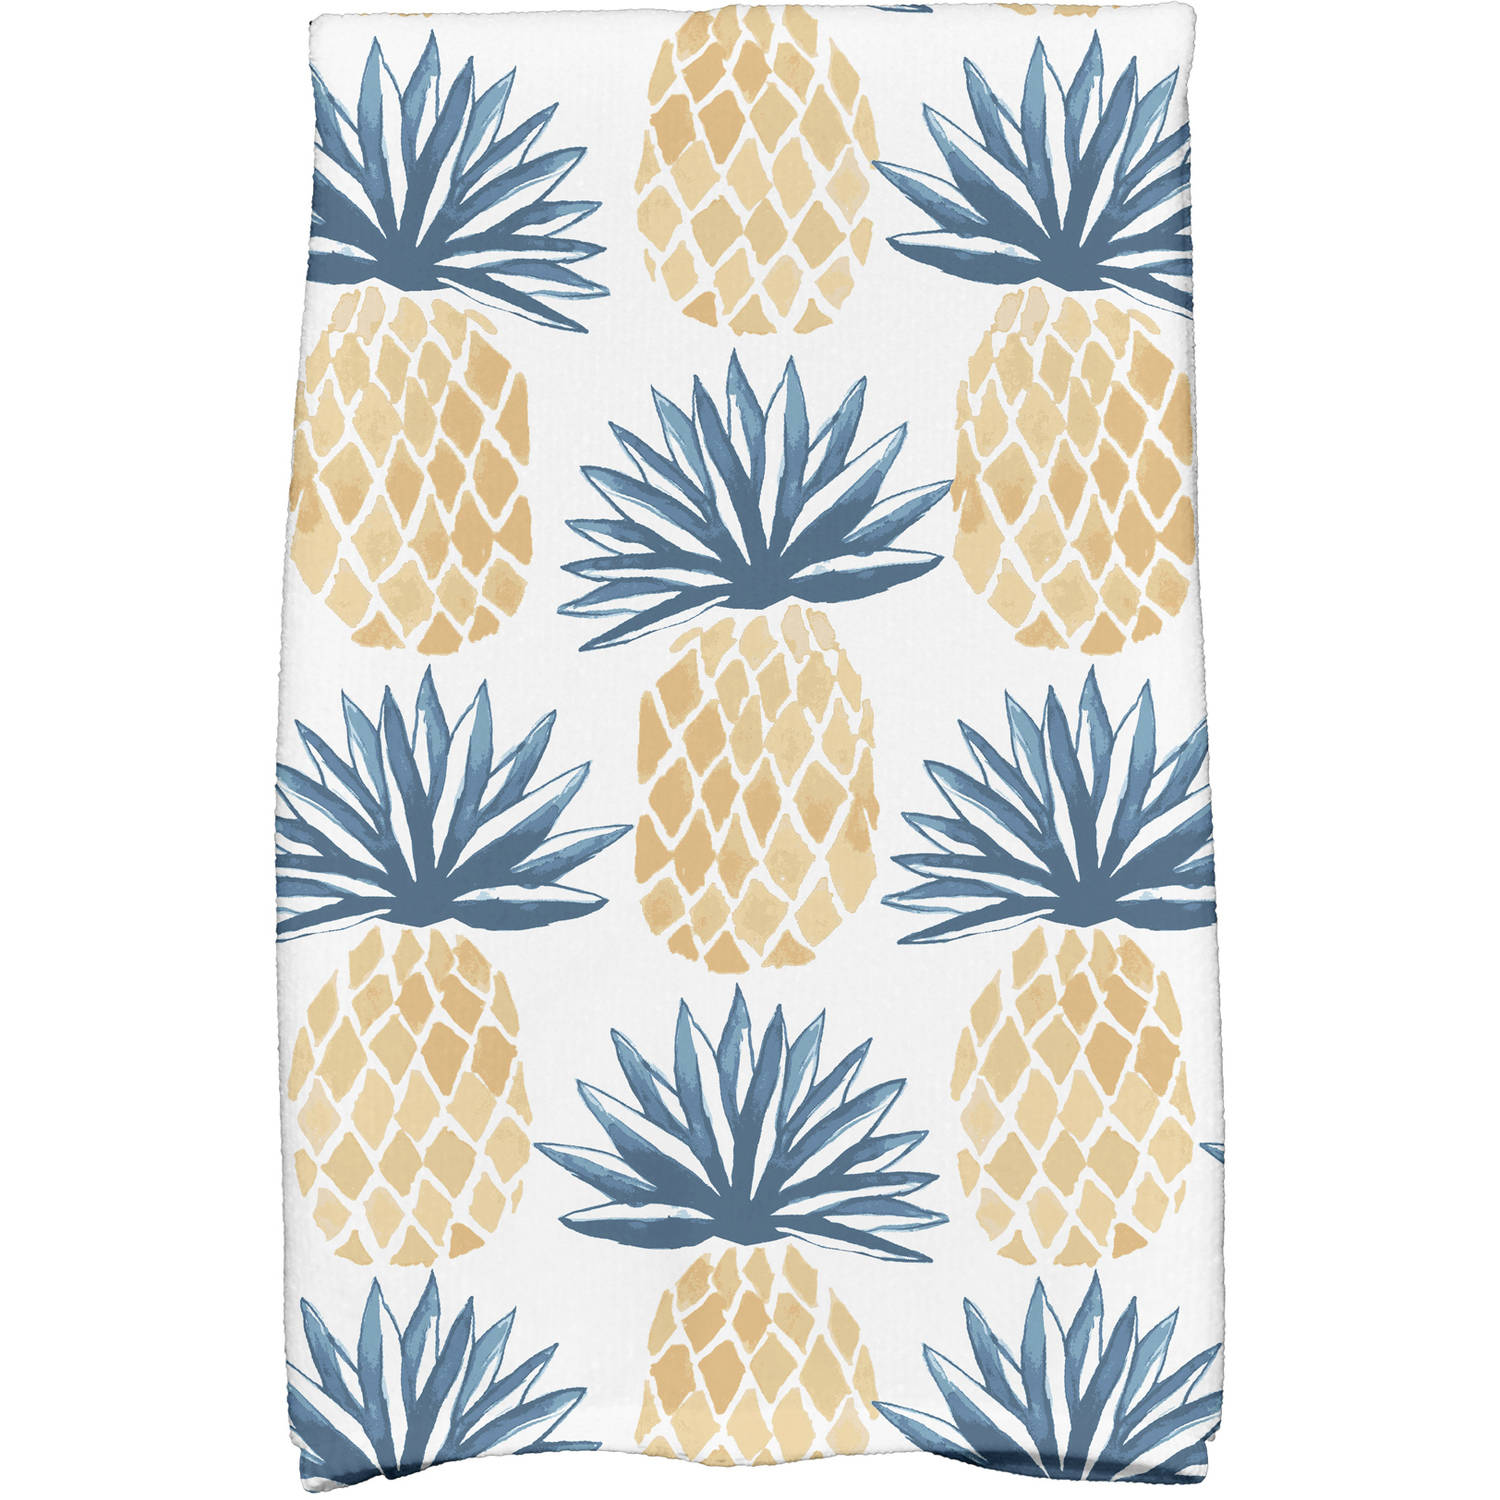 "Simply Daisy 16"" x 25"" Pineapple Stripes Geometric Print Kitchen Towels by E By Design"